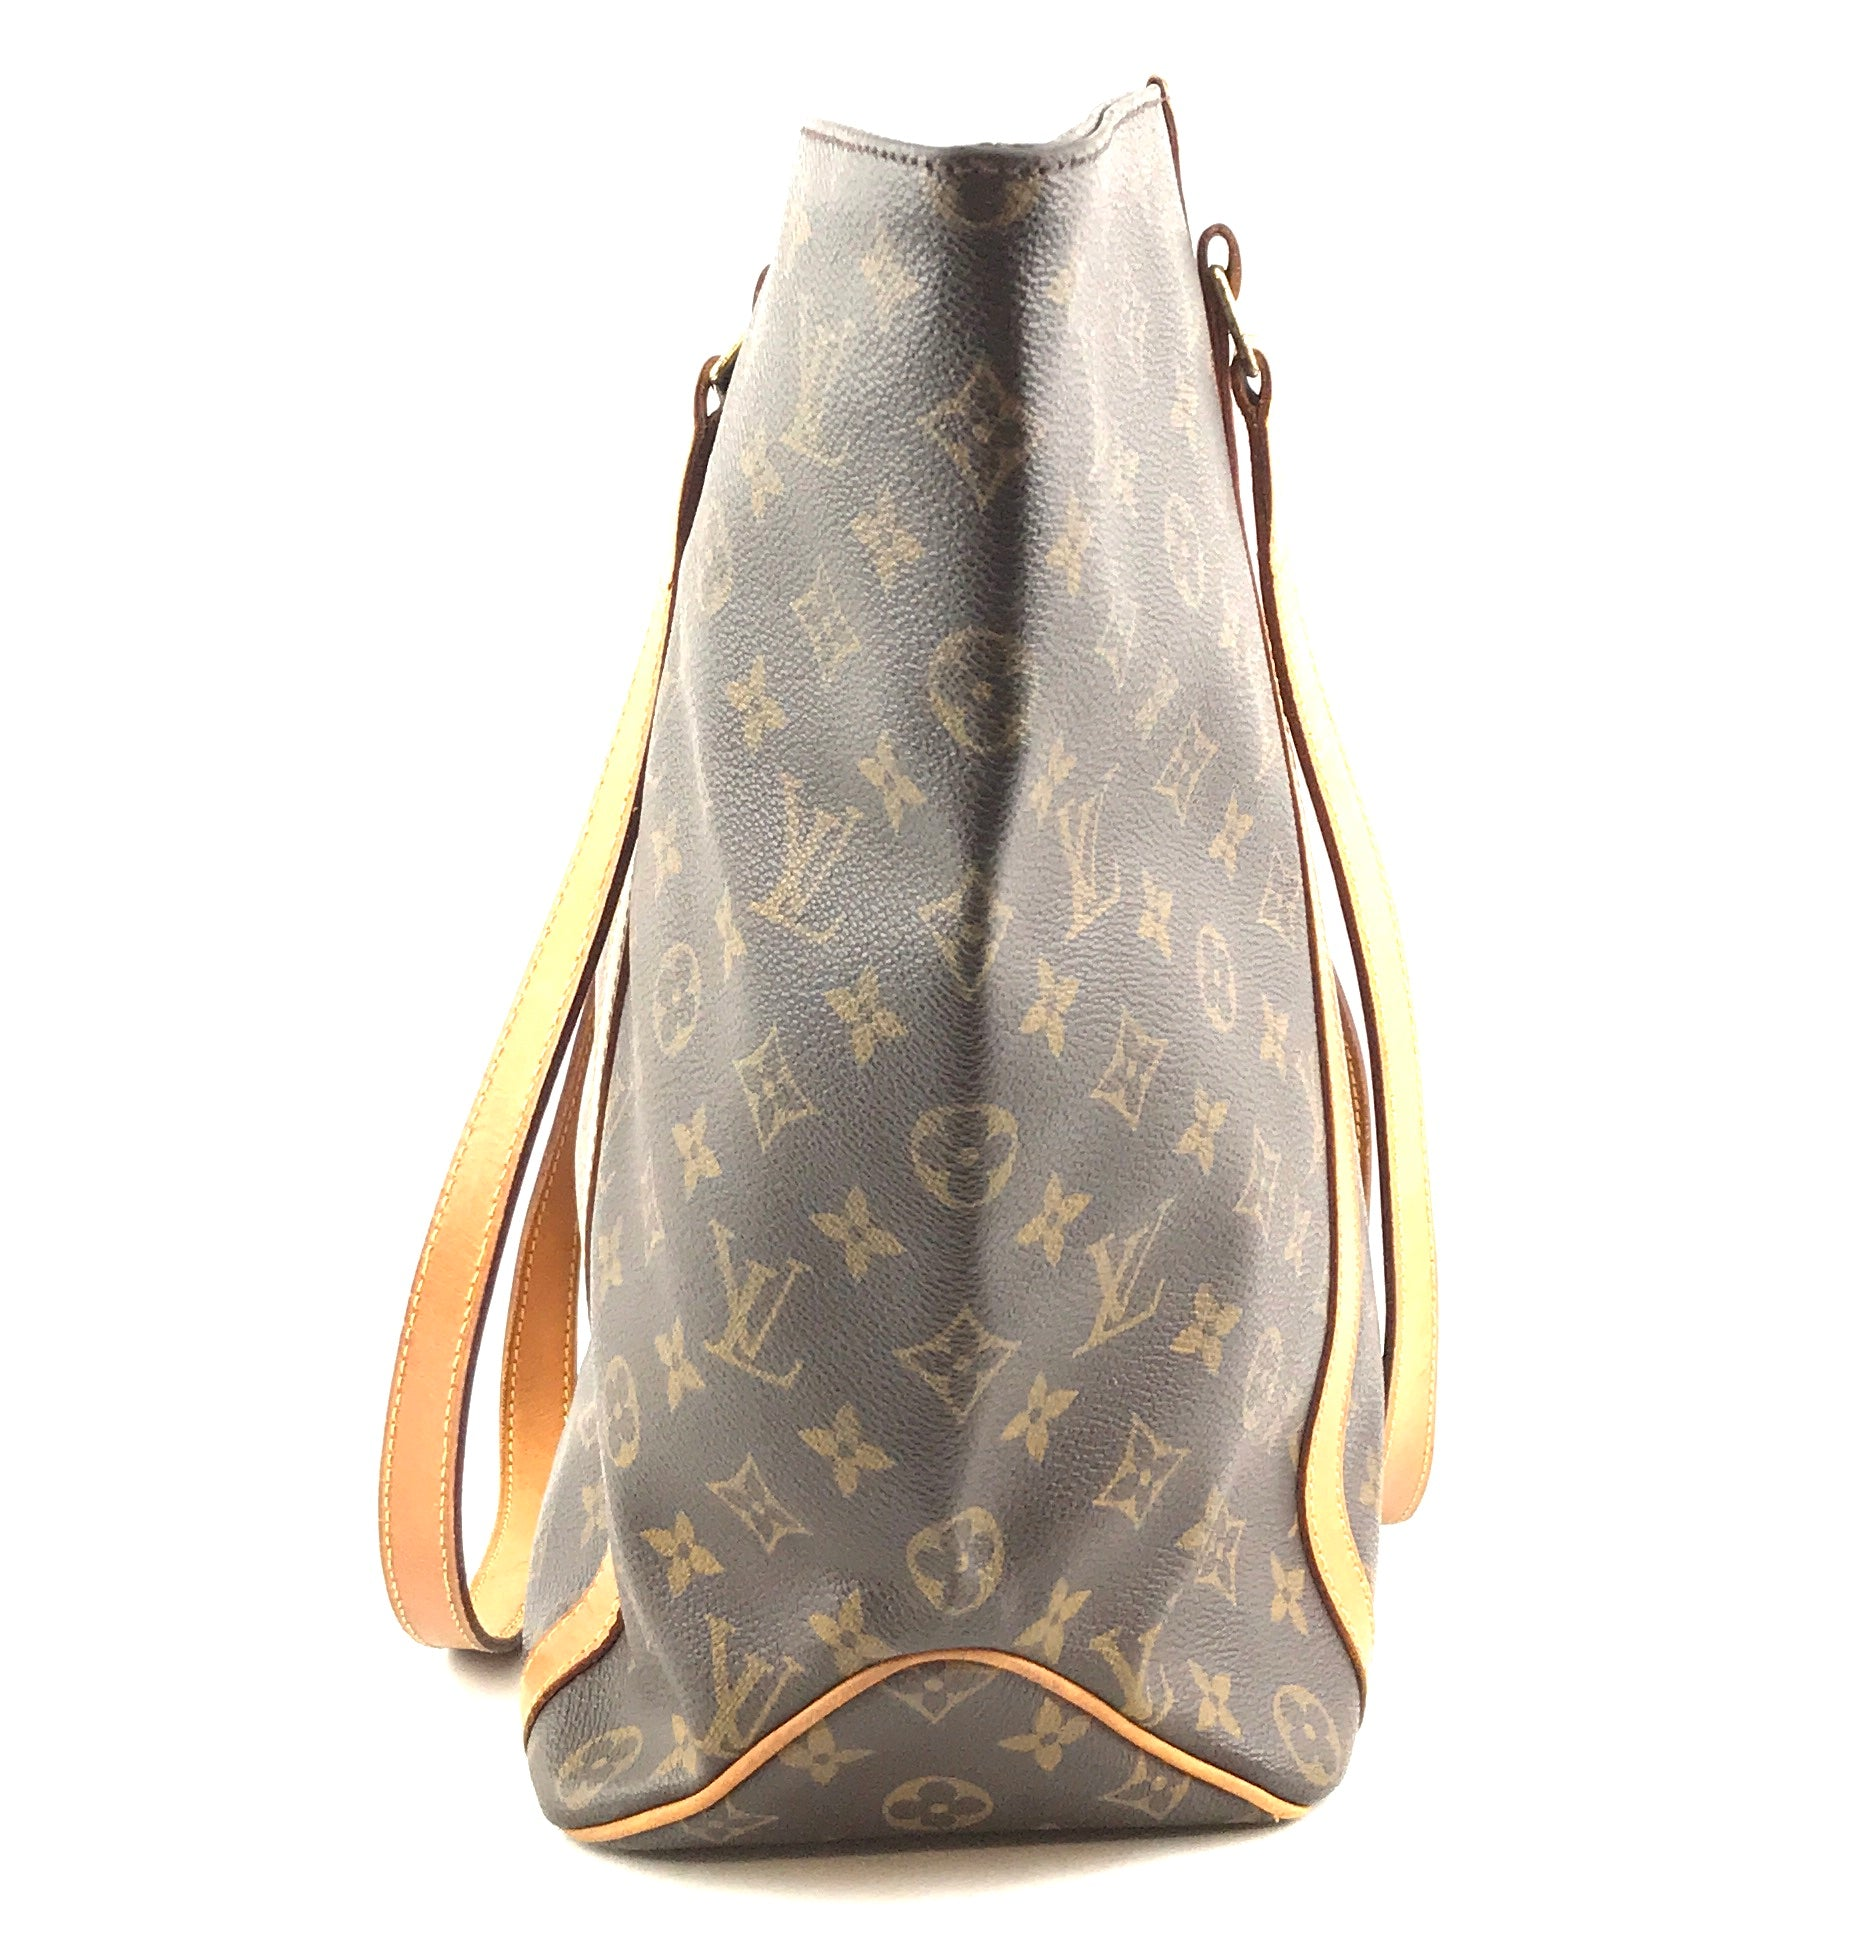 Louis Vuitton Sac Shopping Tote Monogram Canvas